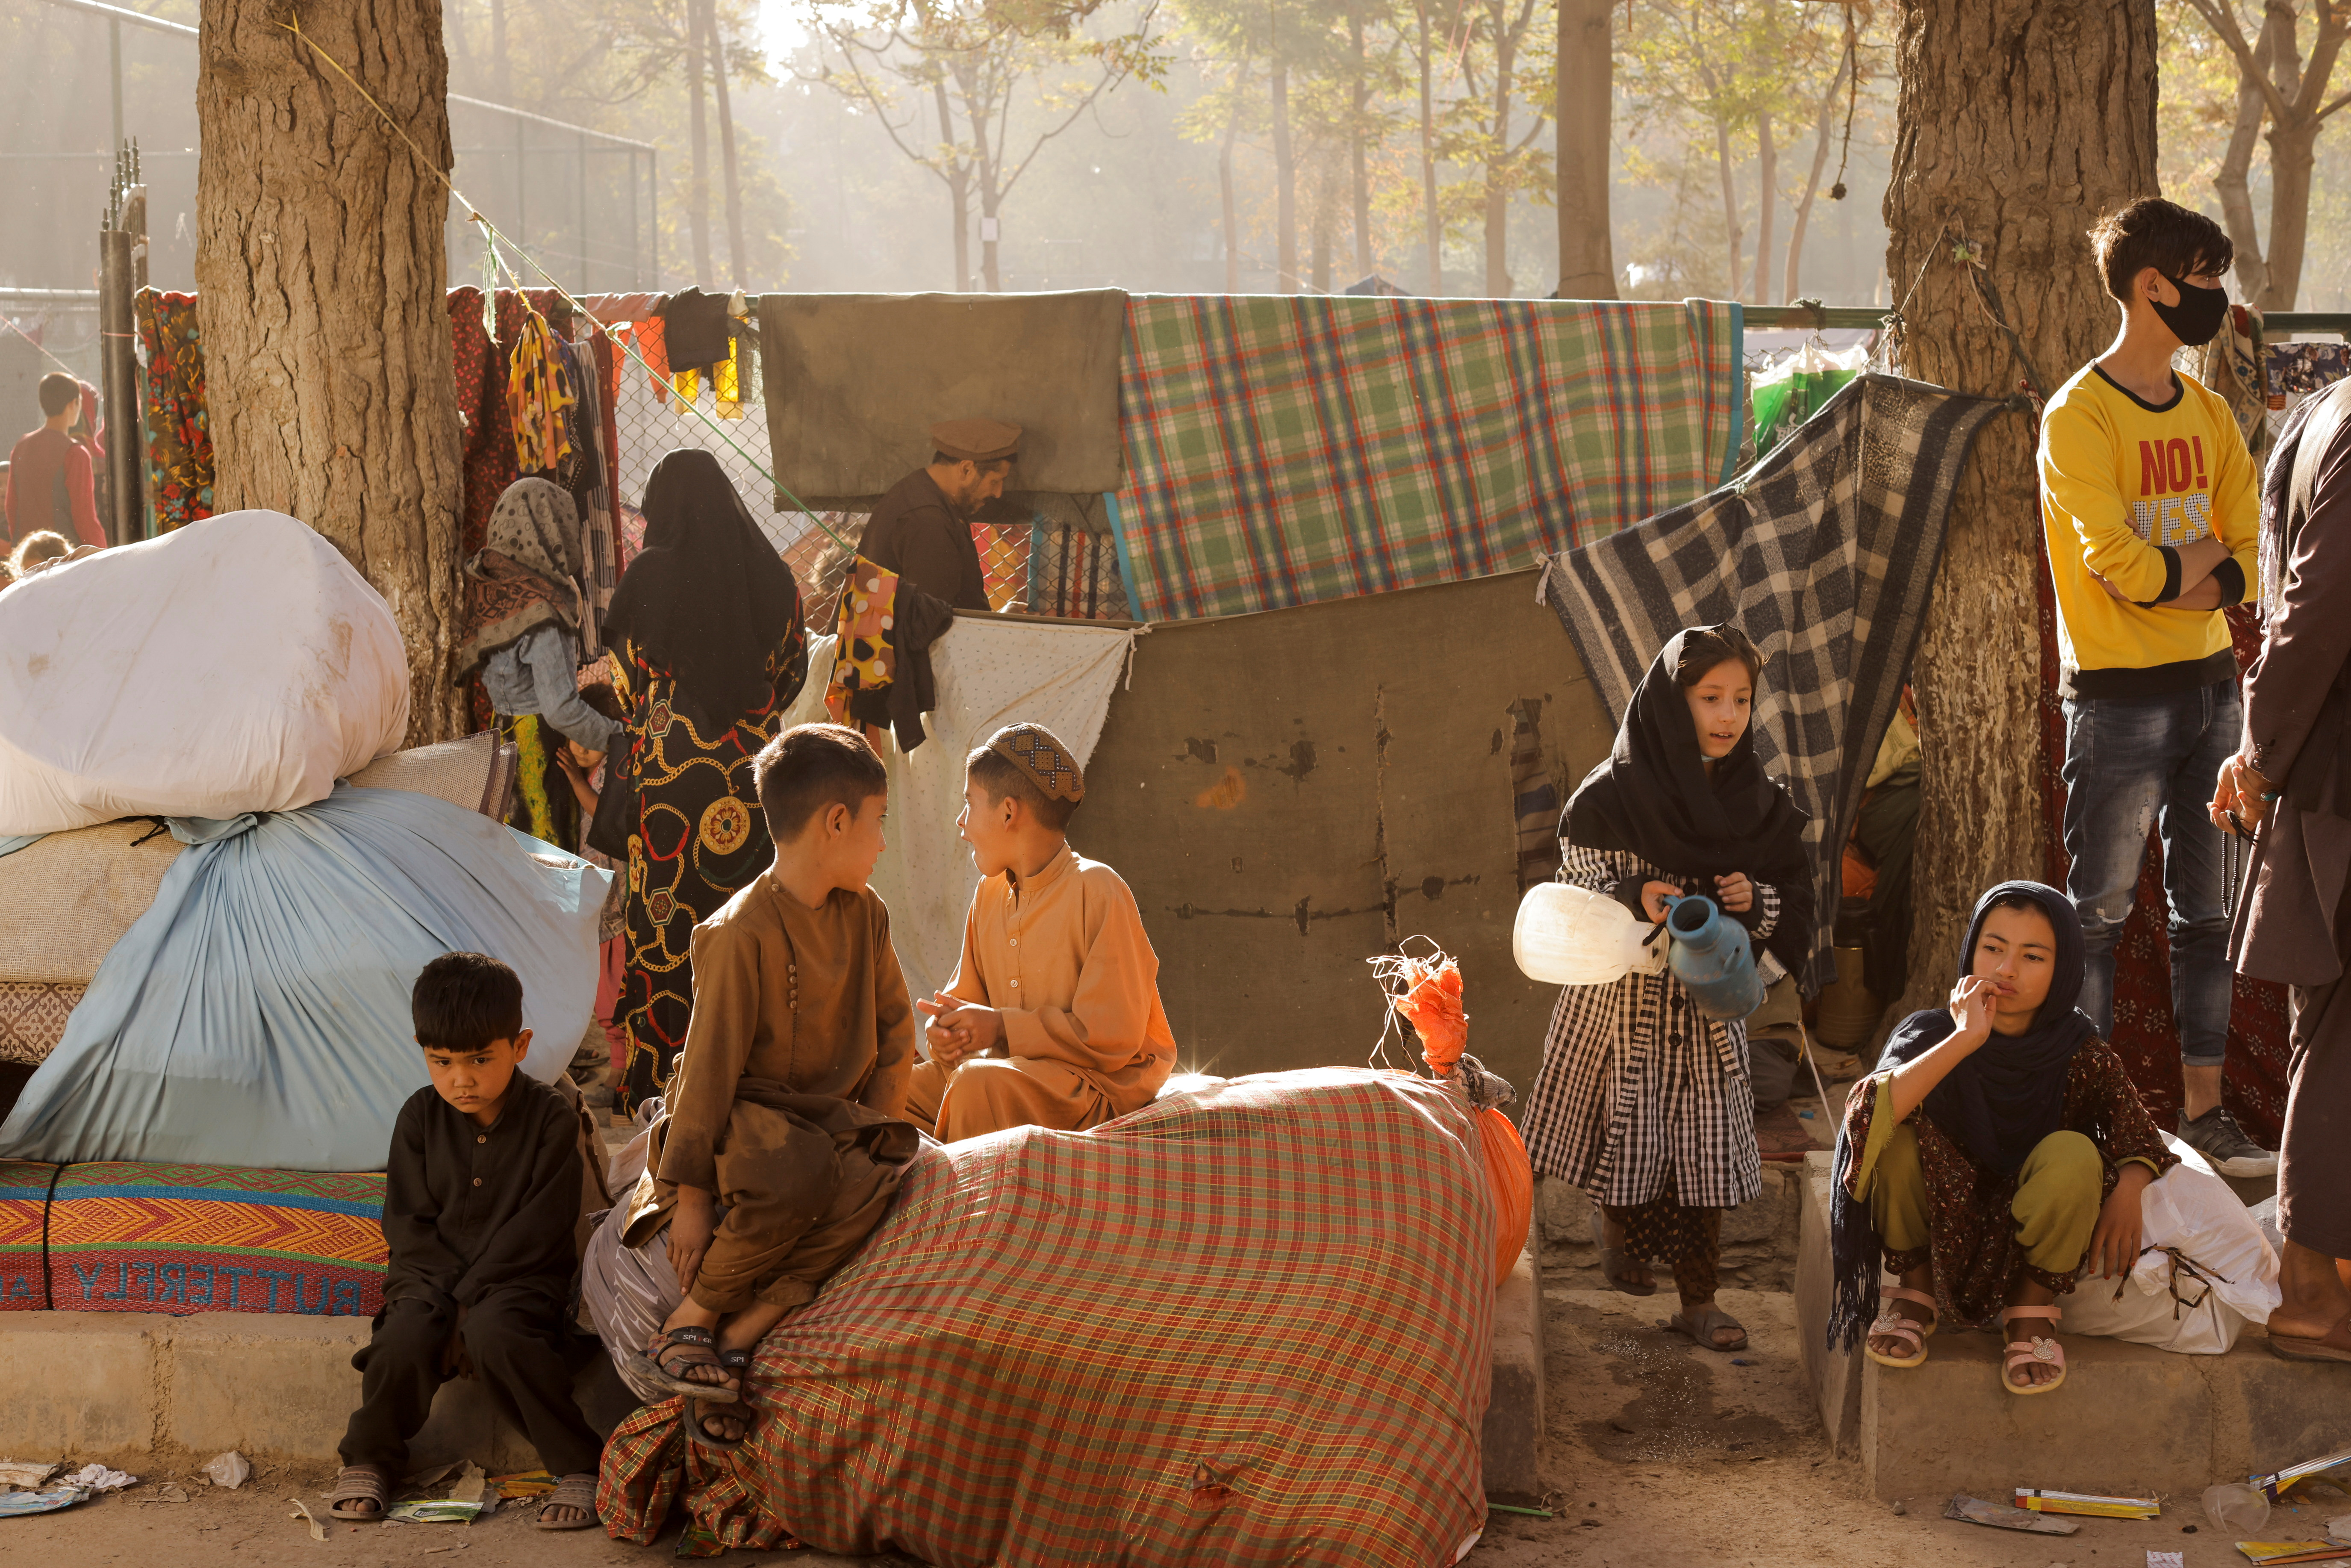 Afghan families, who are among displaced people fleeing the violence in their provinces, sit with their belongings as they prepare to return to their provinces, at a makeshift shelter at Shahr-e Naw park, in Kabul, Afghanistan October 4, 2021. REUTERS/Jorge Silva